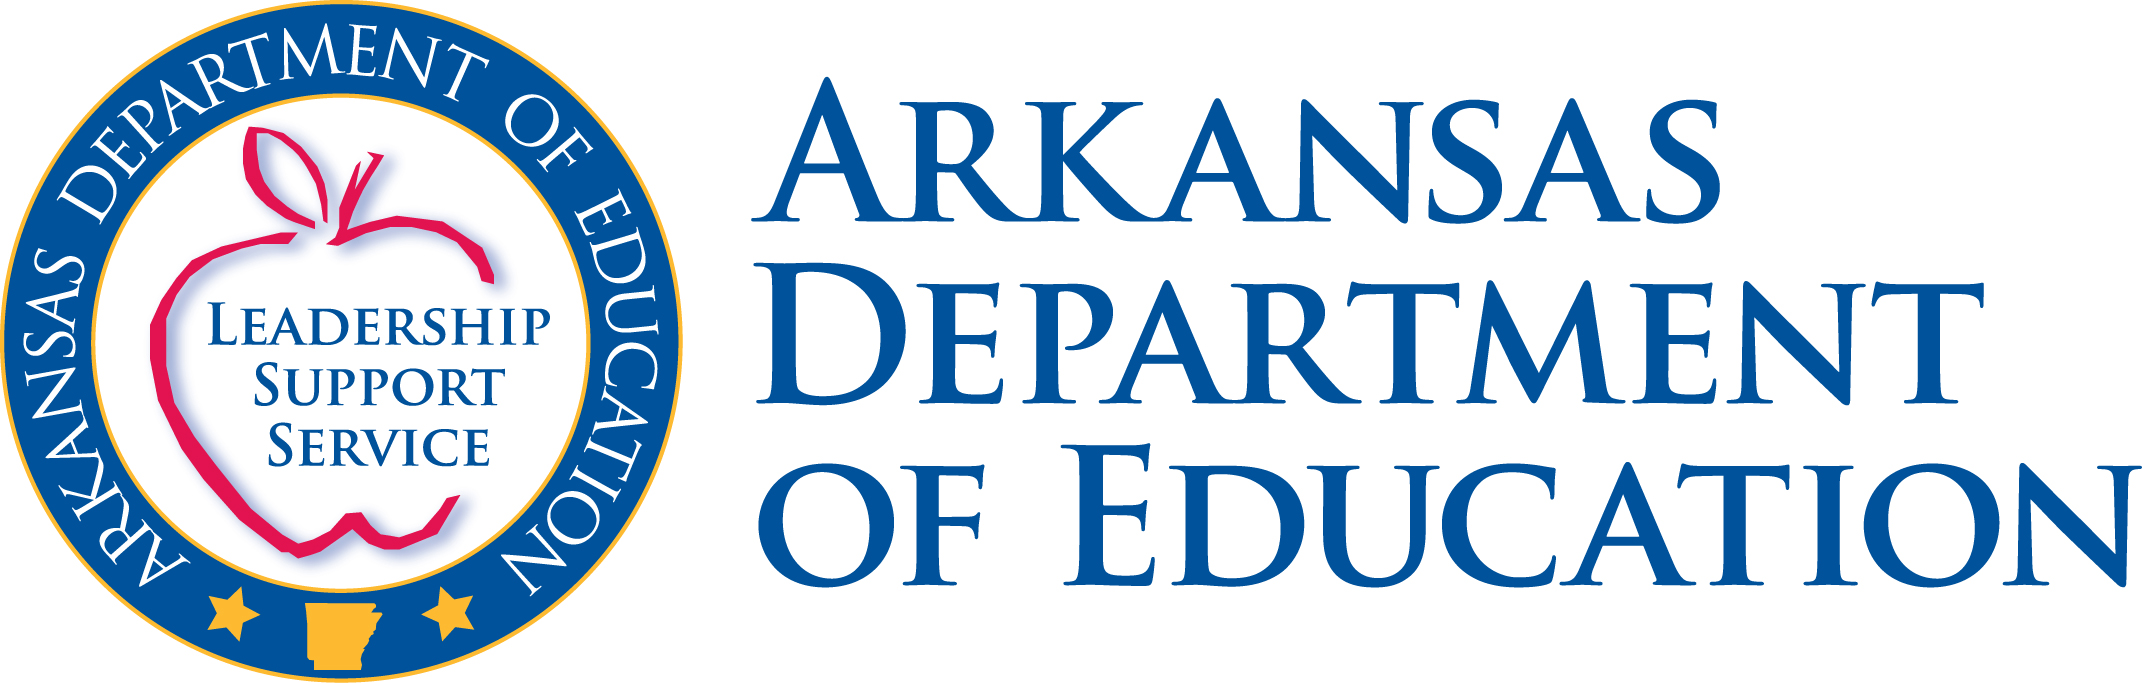 Arkansas Department of Education: